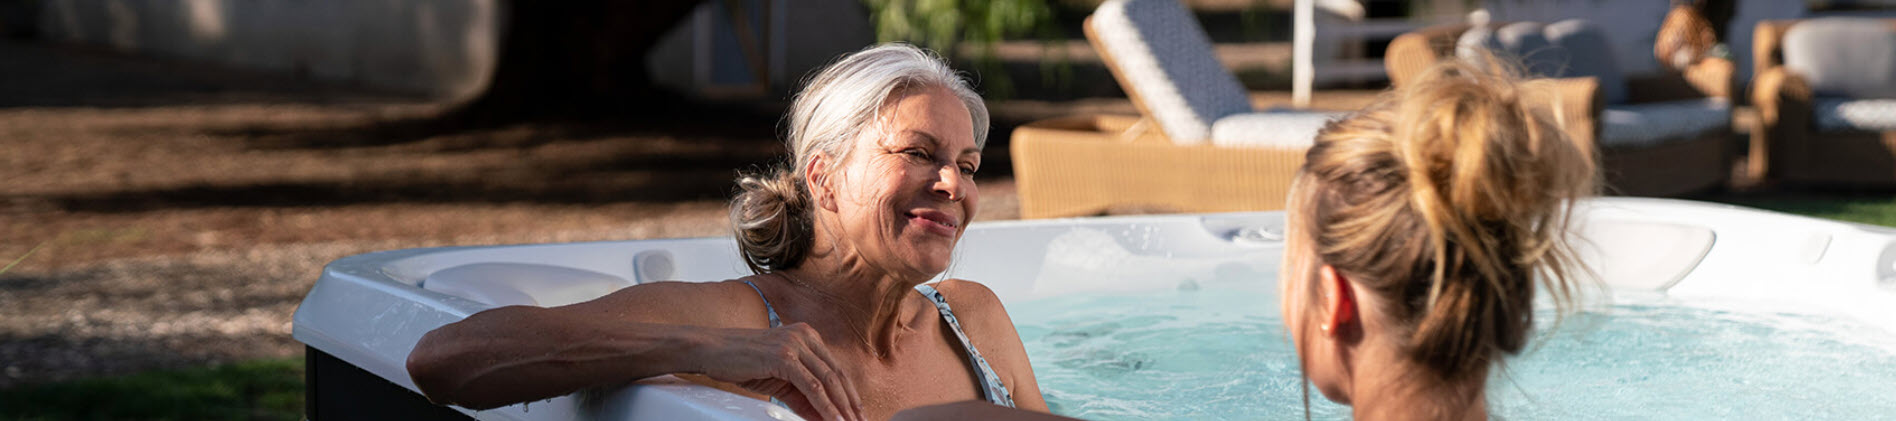 Steamboat Springs Hot Tub Service Company Shares 3 Ways to Stay Healthy